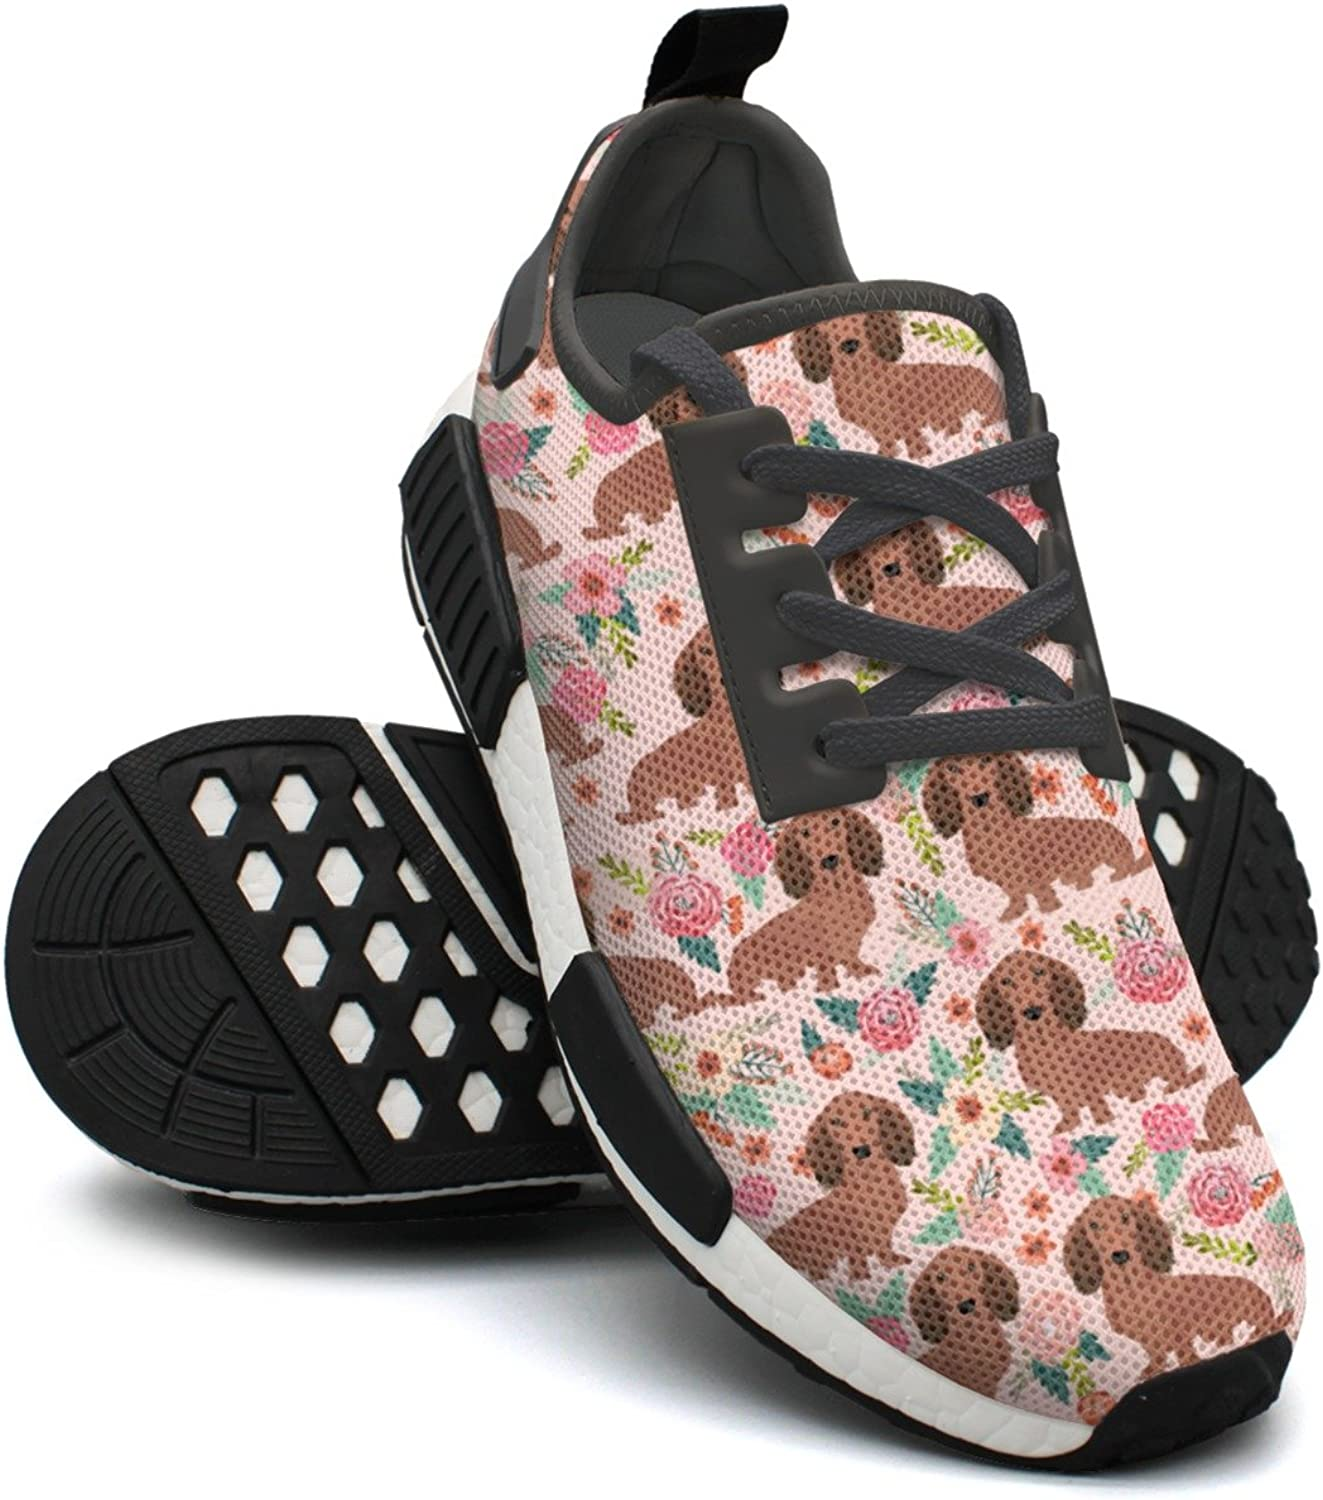 Ktyyuwwww Women Girls colorful Camping Pink Dachshunds Dog Floral Novelty Fashion Running shoes